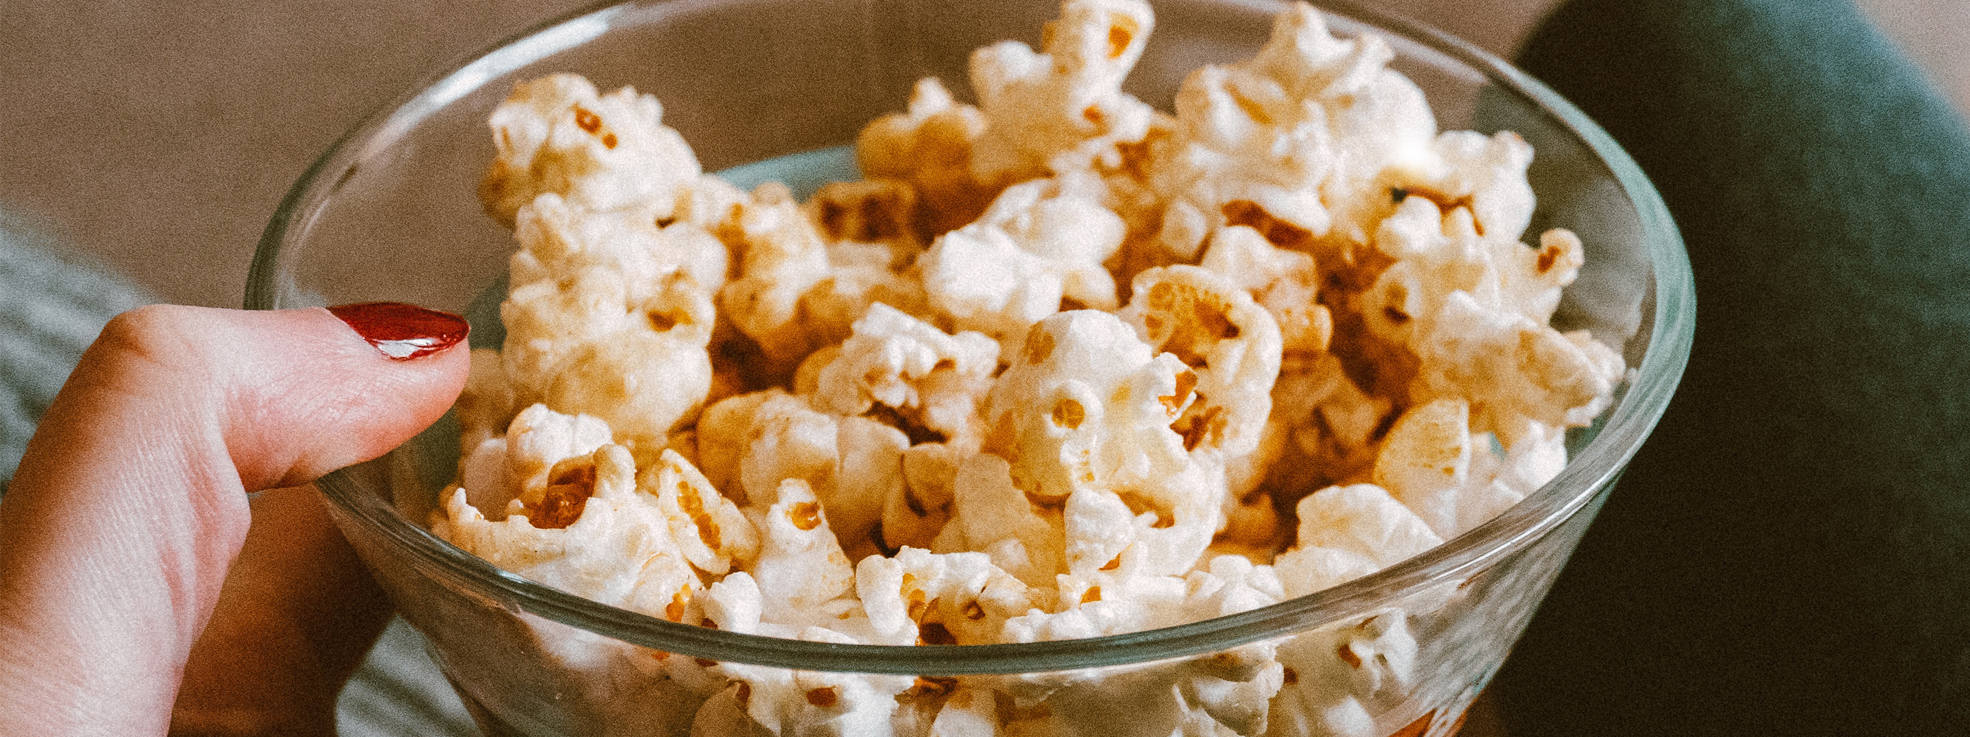 Quick Snacks To Munch On During Movie Night